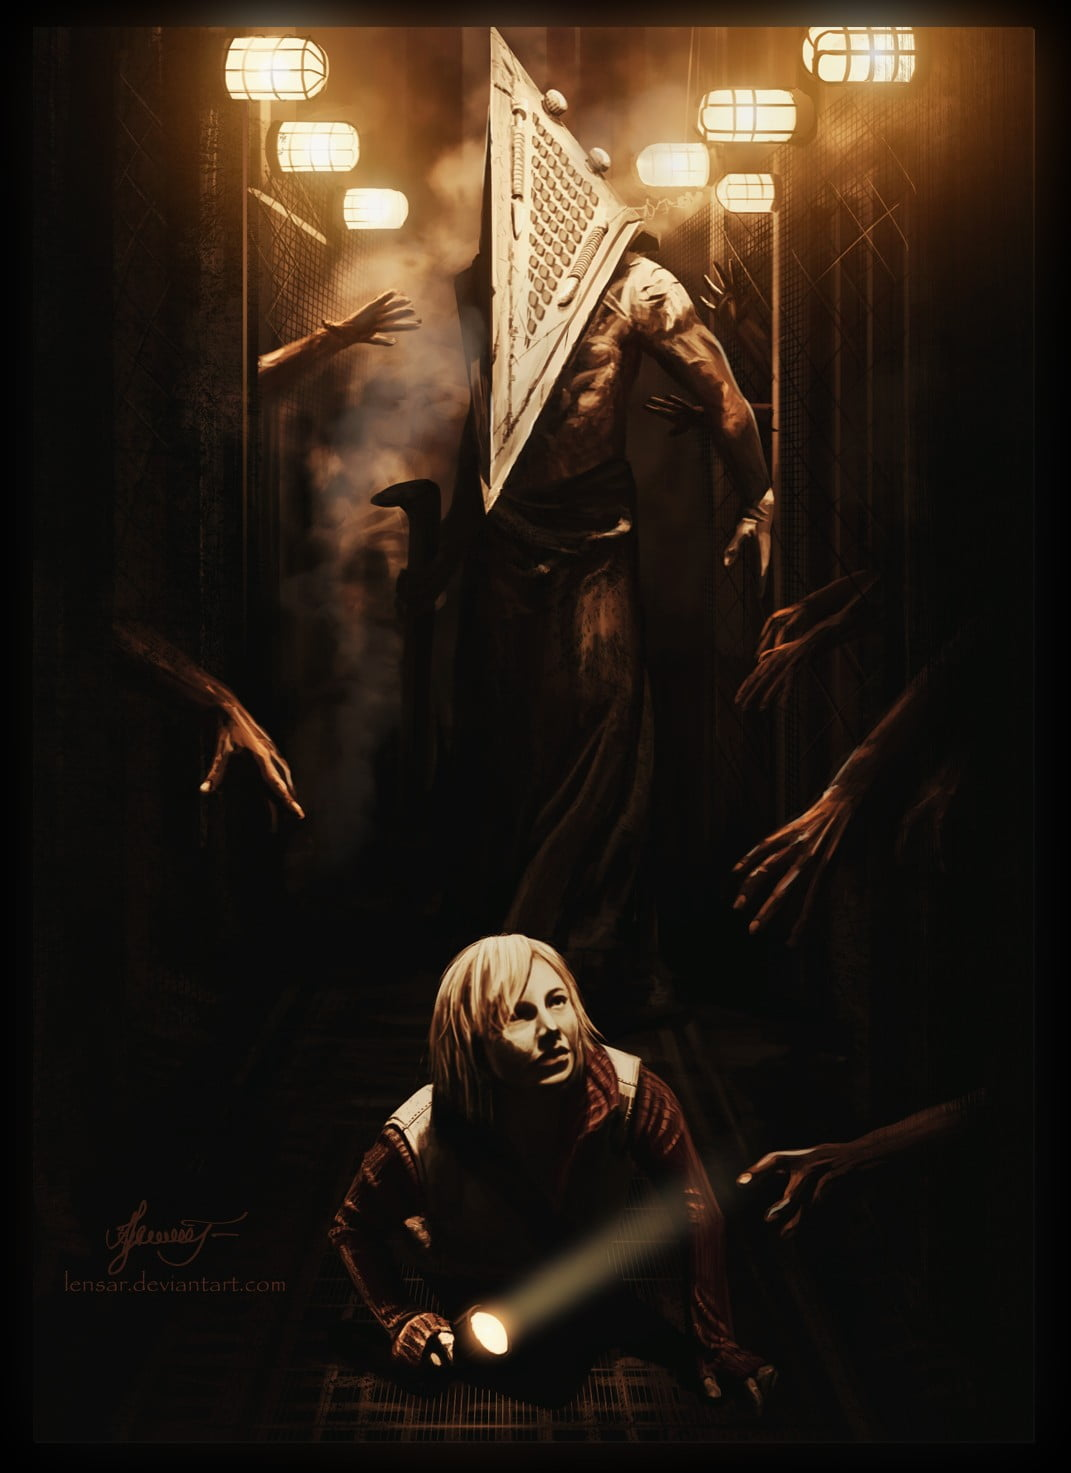 Silent Hill Hd Wallpapers Posted By Ryan Sellers